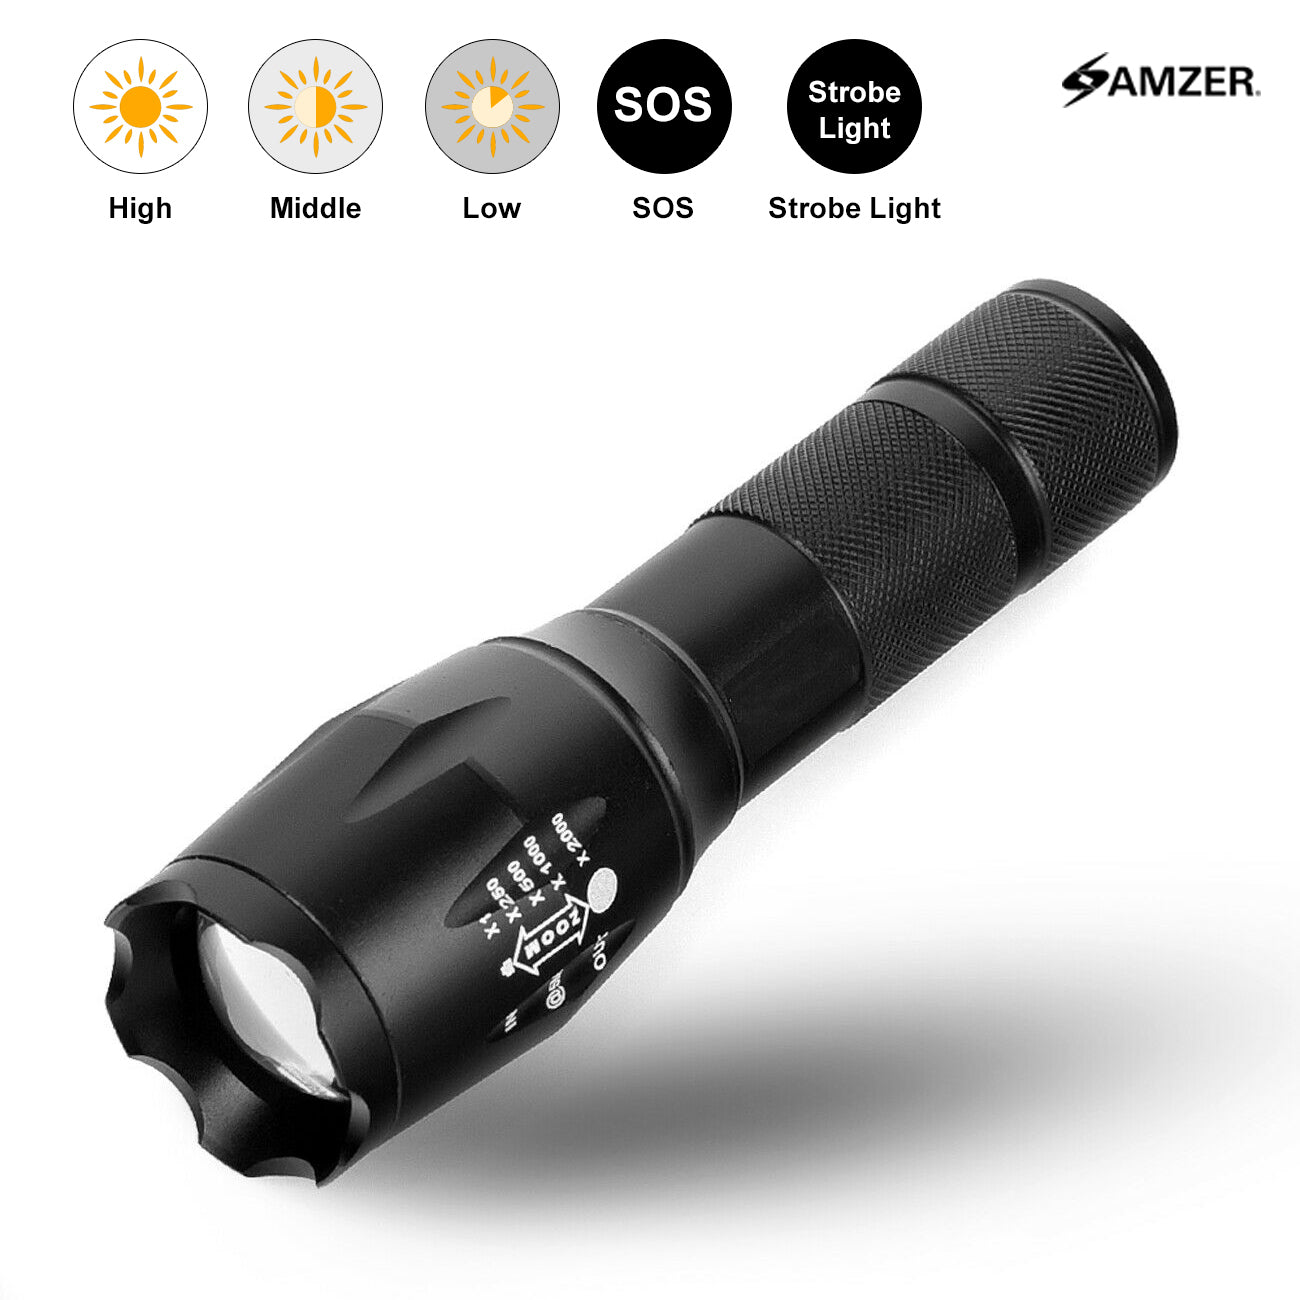 Waterproof Tactical Zoom Torch | Fommy